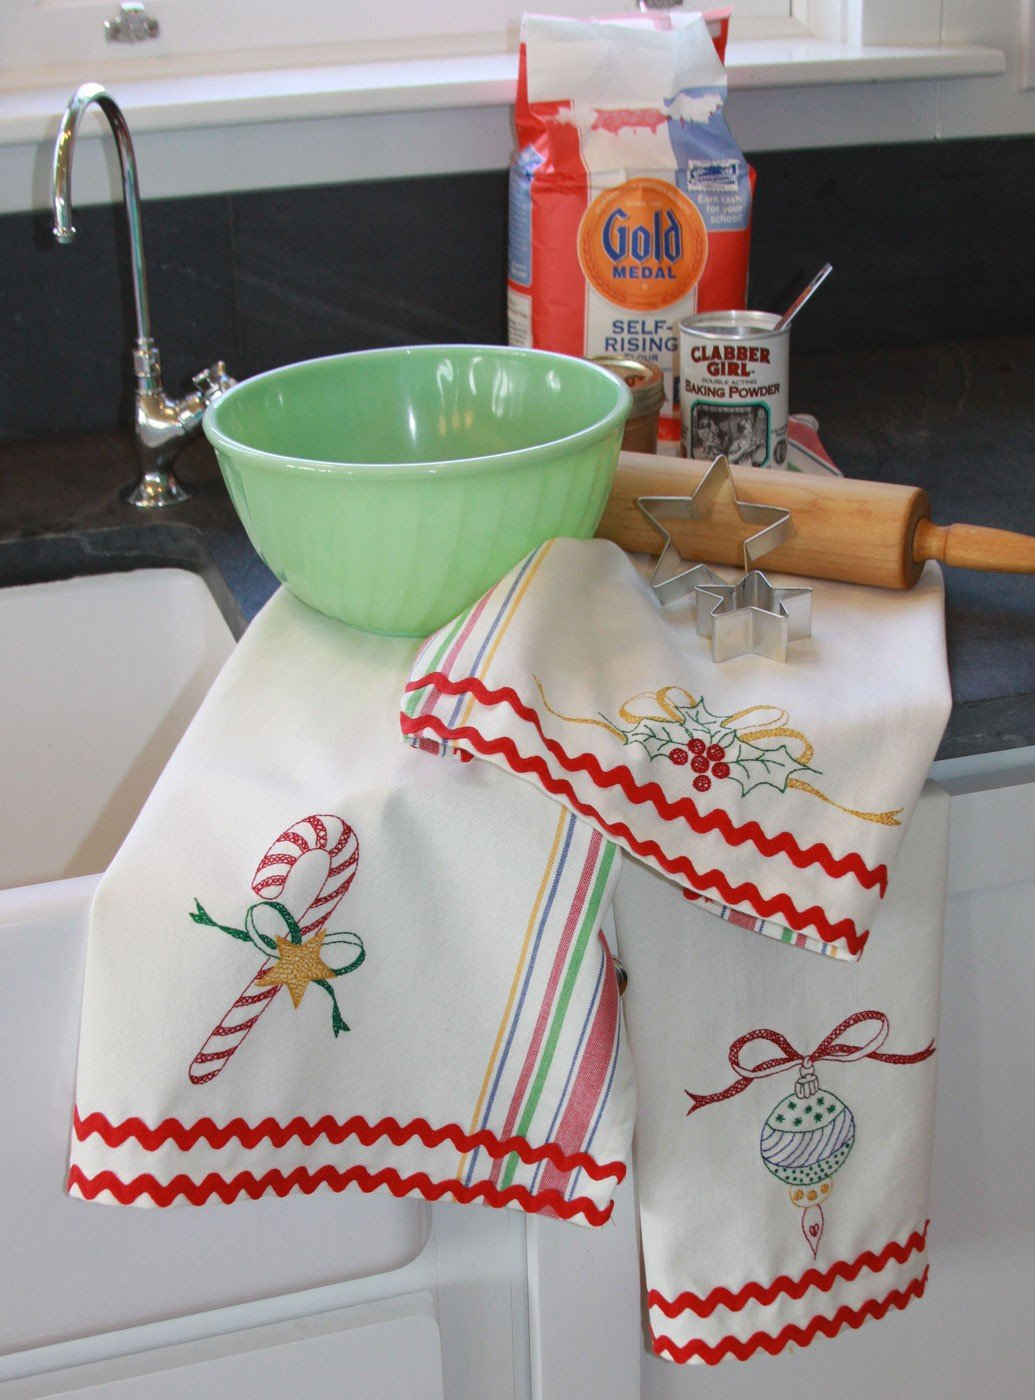 Merry Merry dish towels